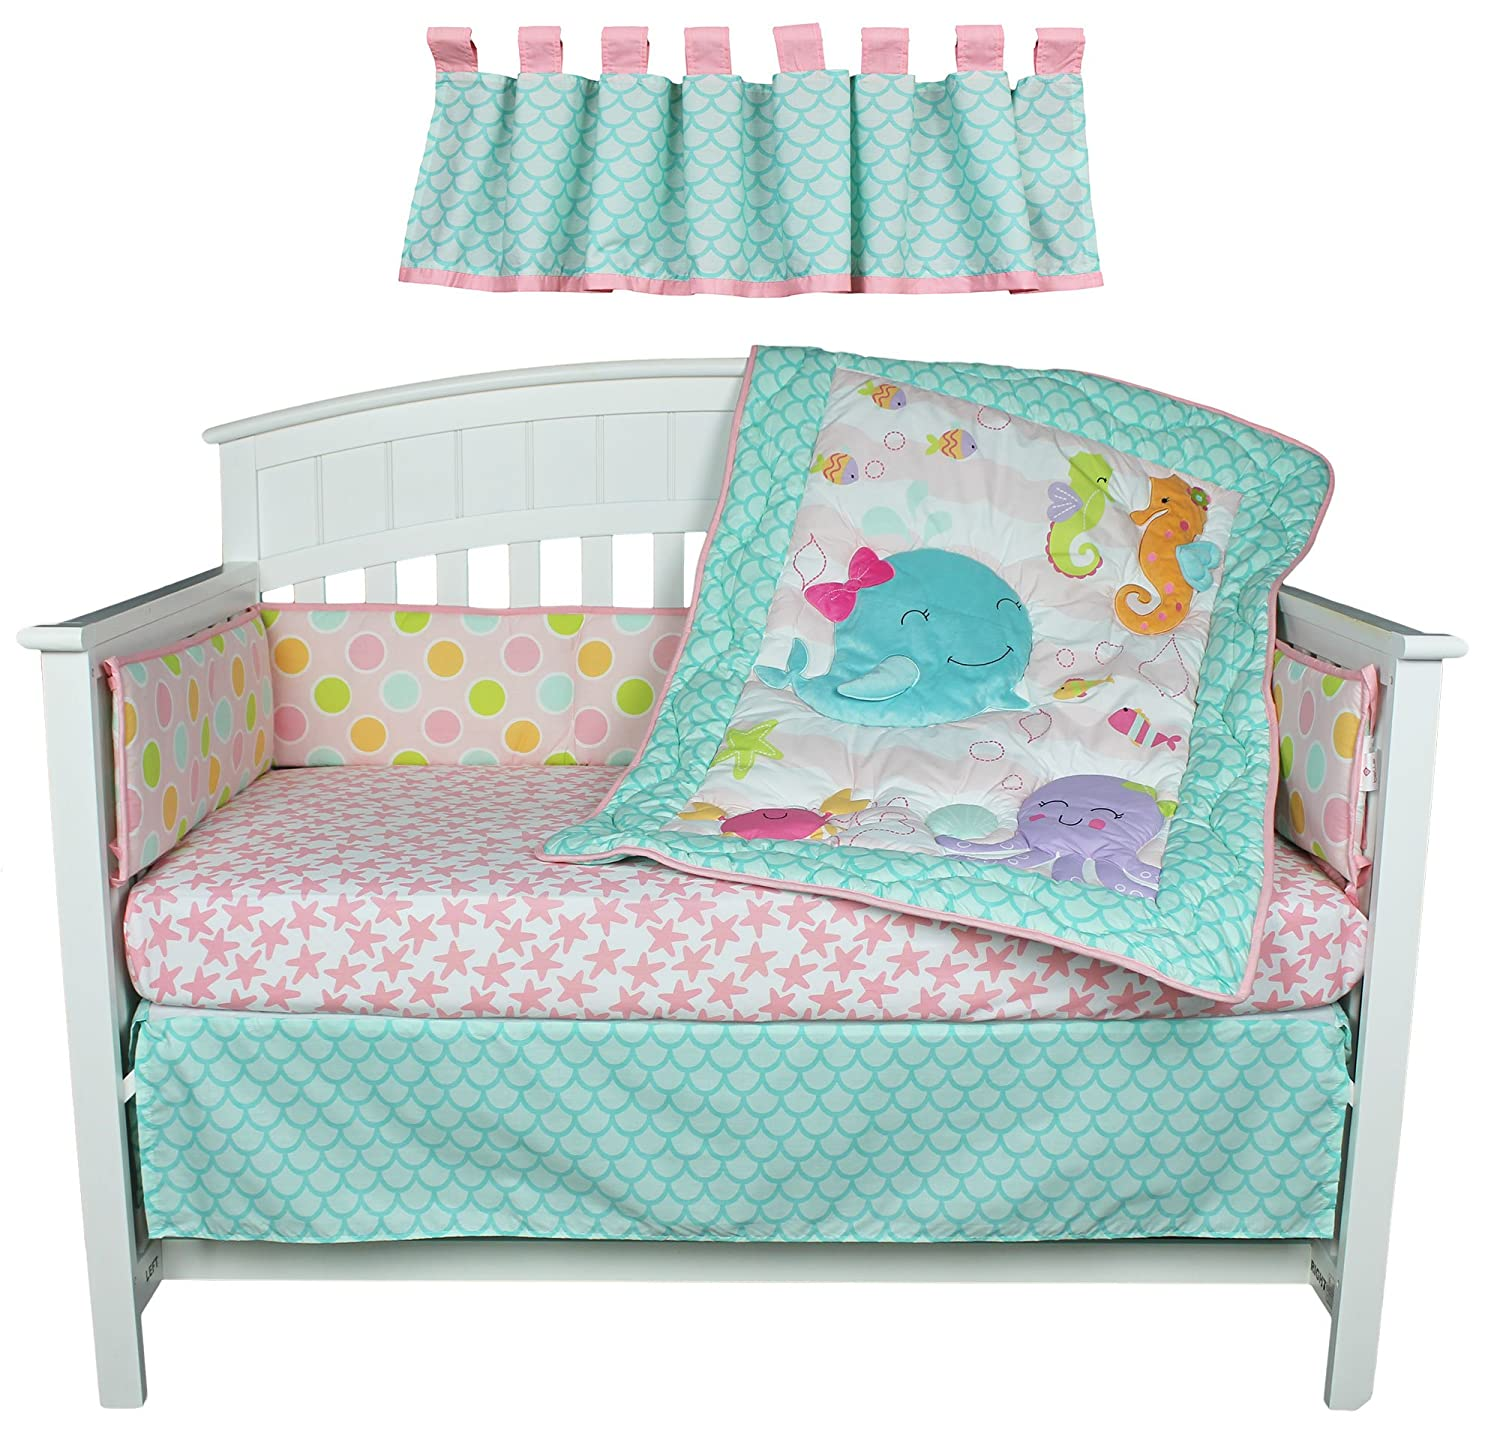 grandbaby nursery search pin google mermaid pinterest bed girl crib bedding